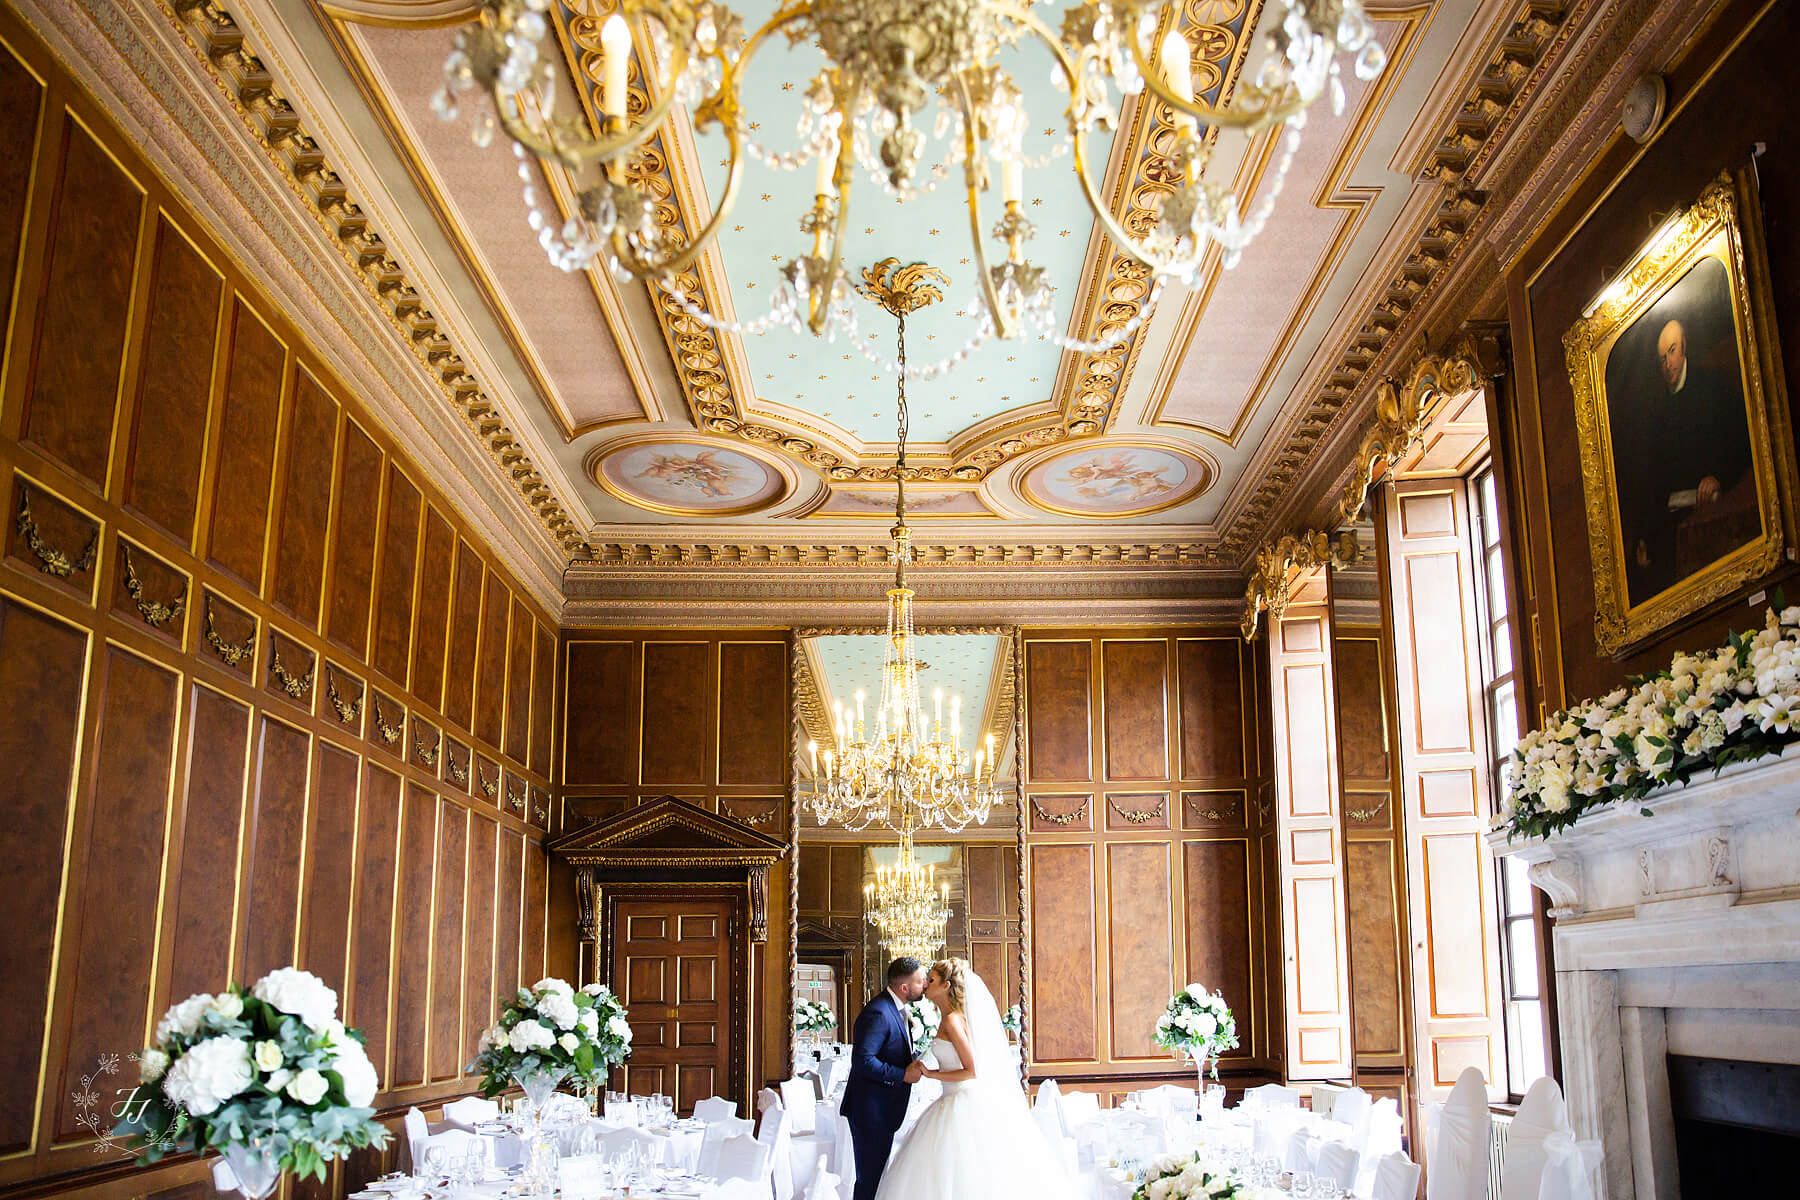 The ballroom at Gosfield Hall with painted ceiling